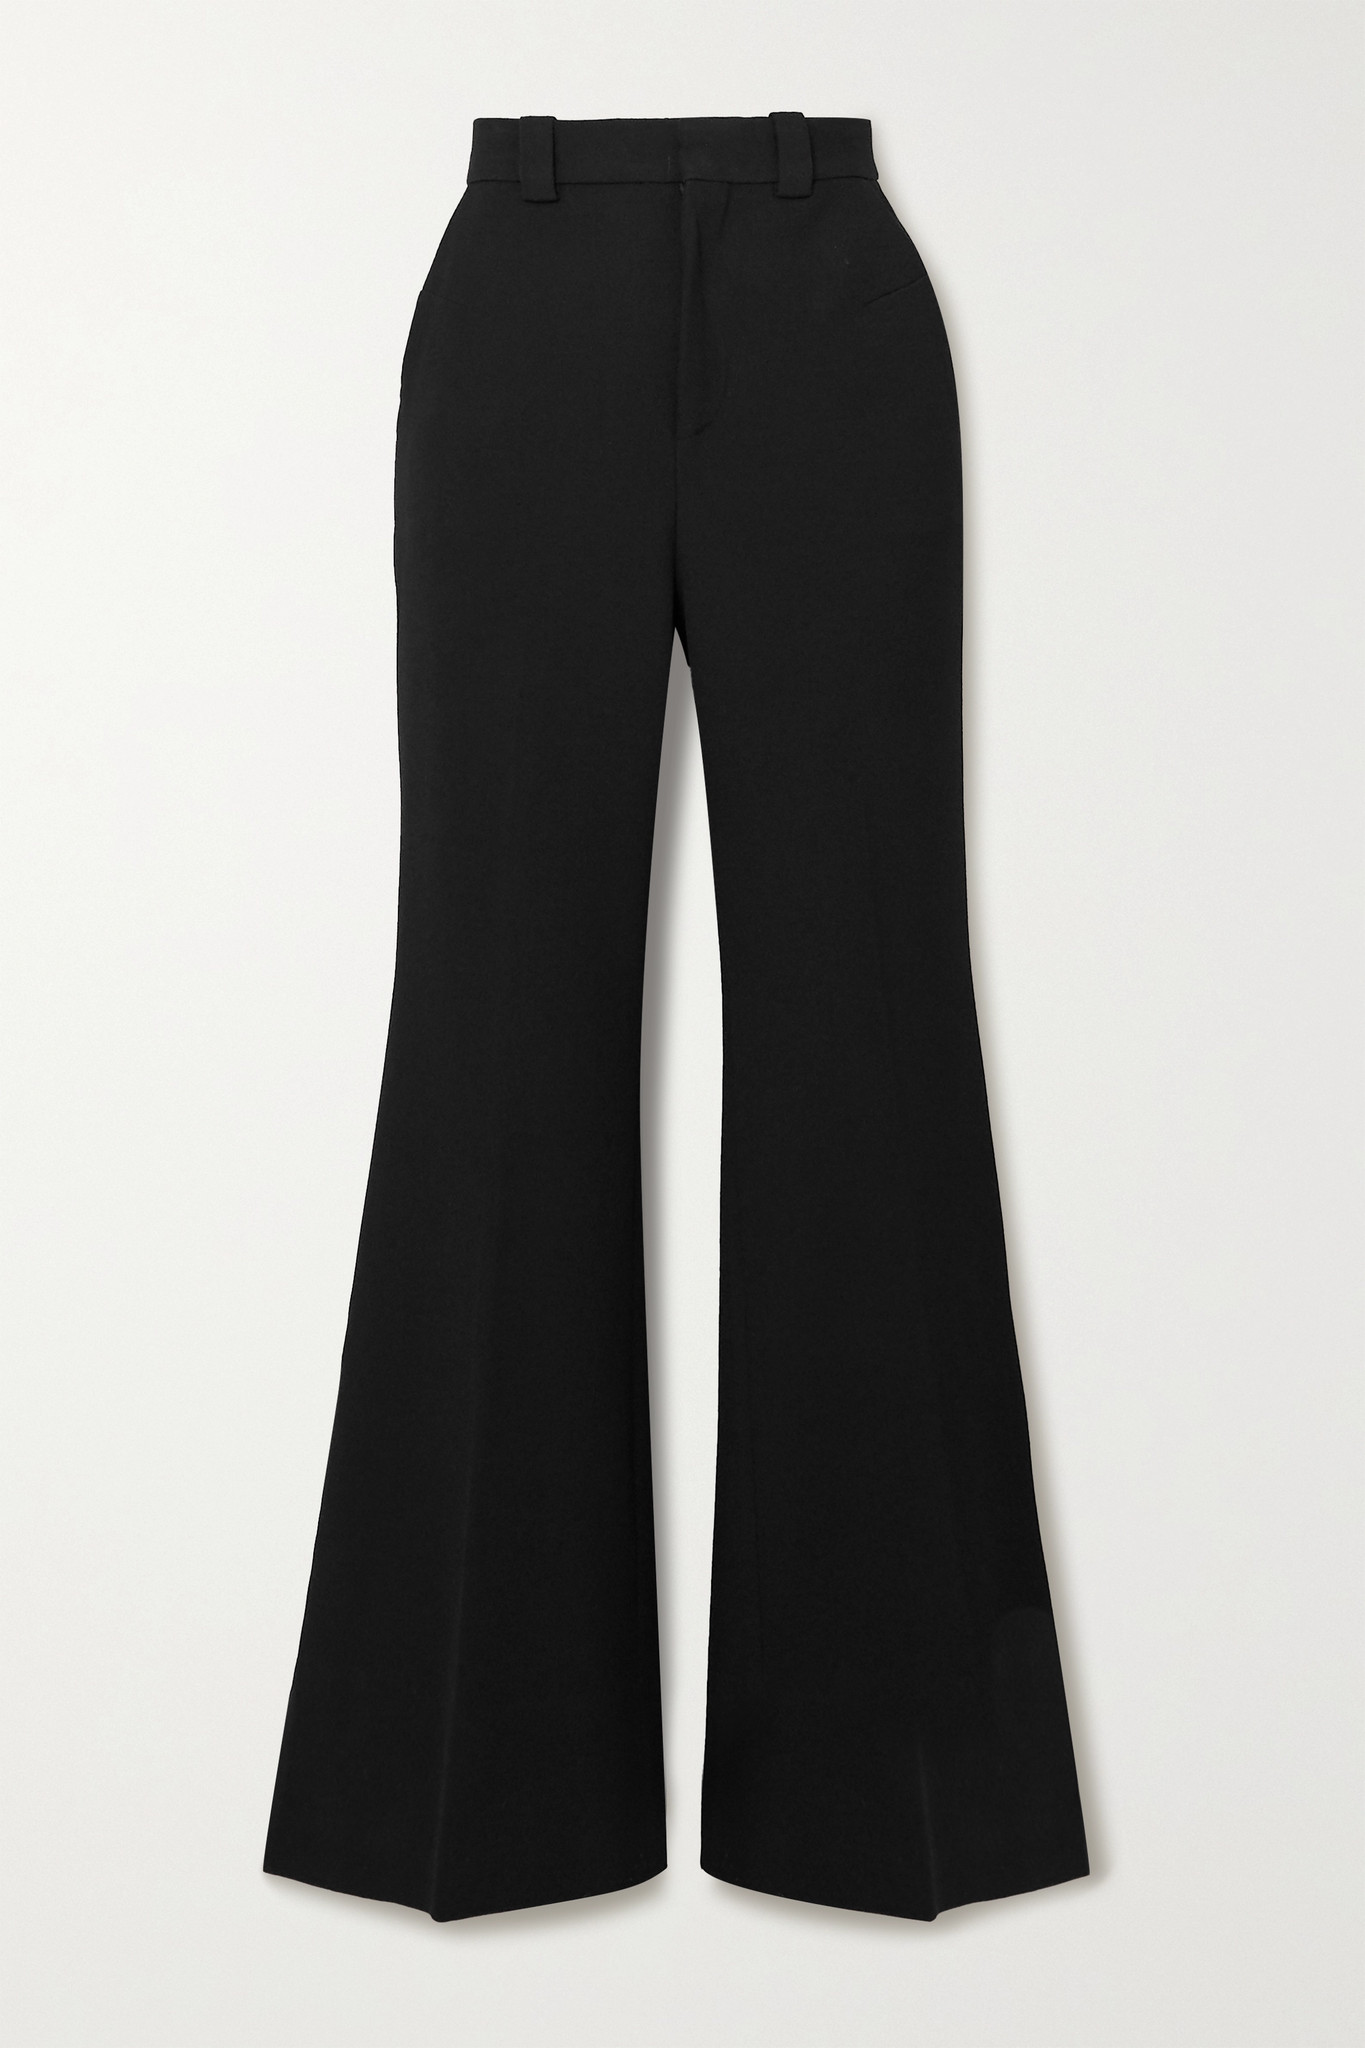 ROLAND MOURET - Dilman Stretch-crepe Flared Pants - Black - UK10